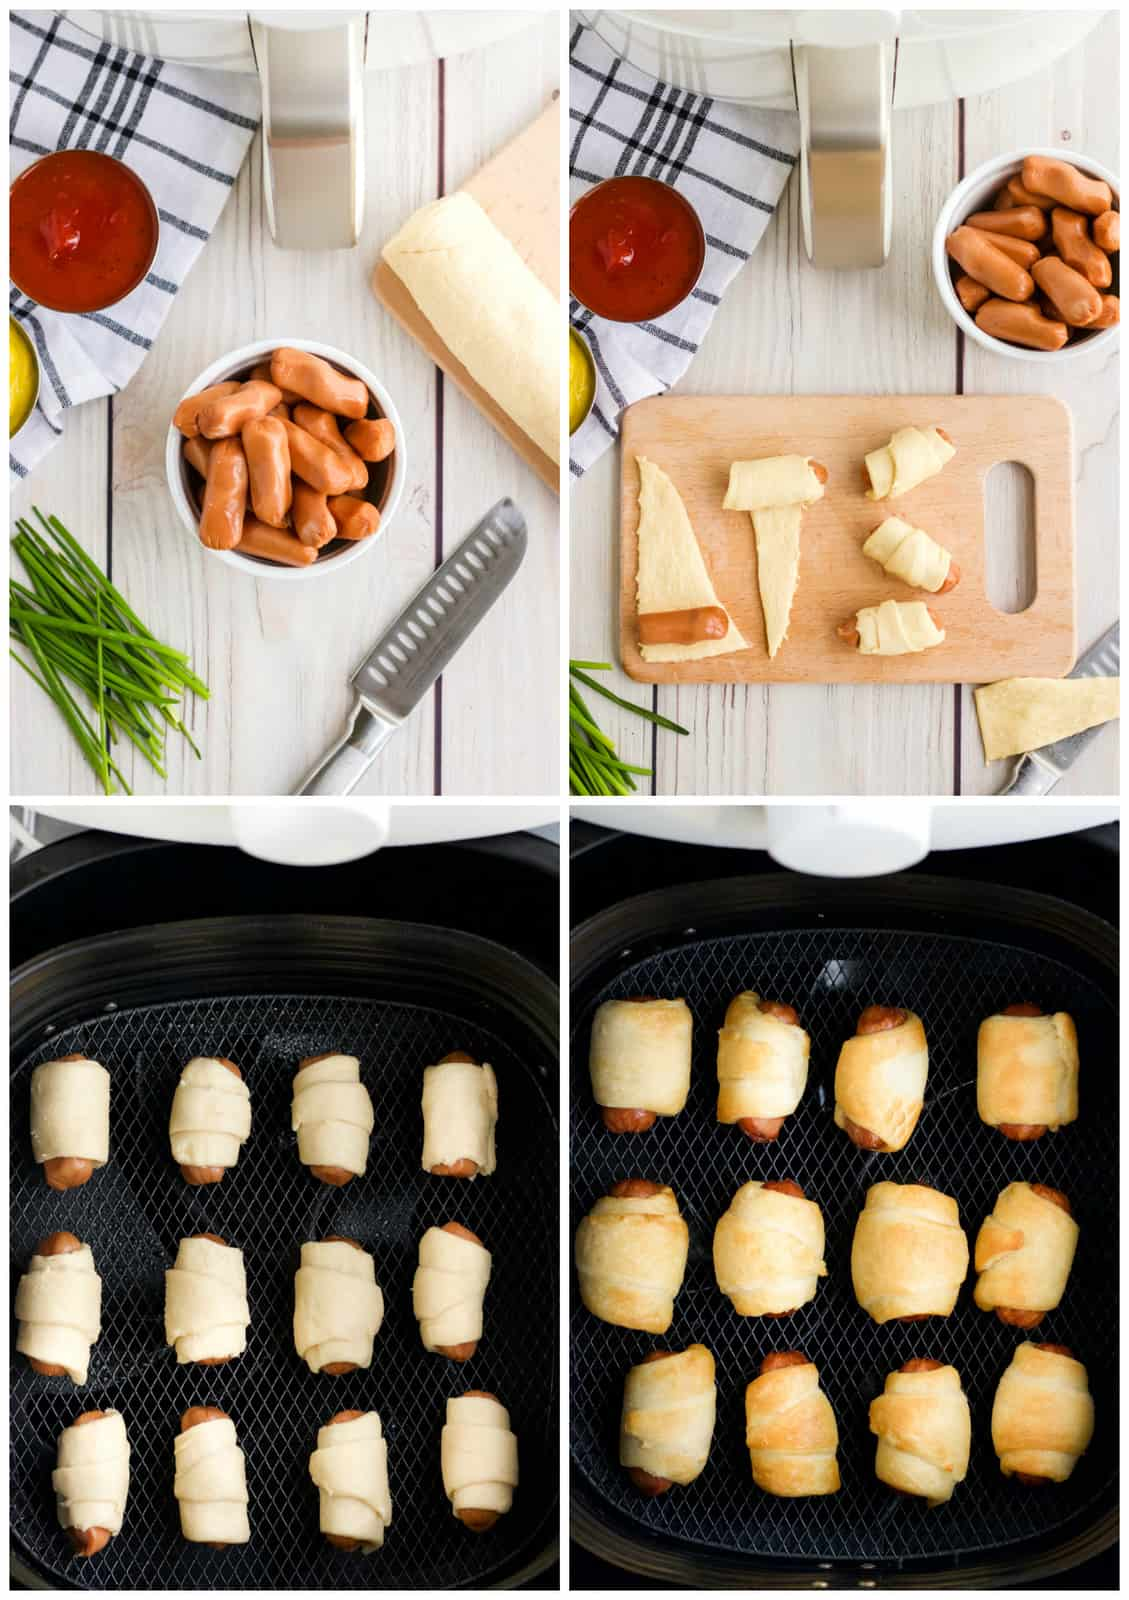 Step by step photos on how to make Air Fryer Pigs in a Blanket